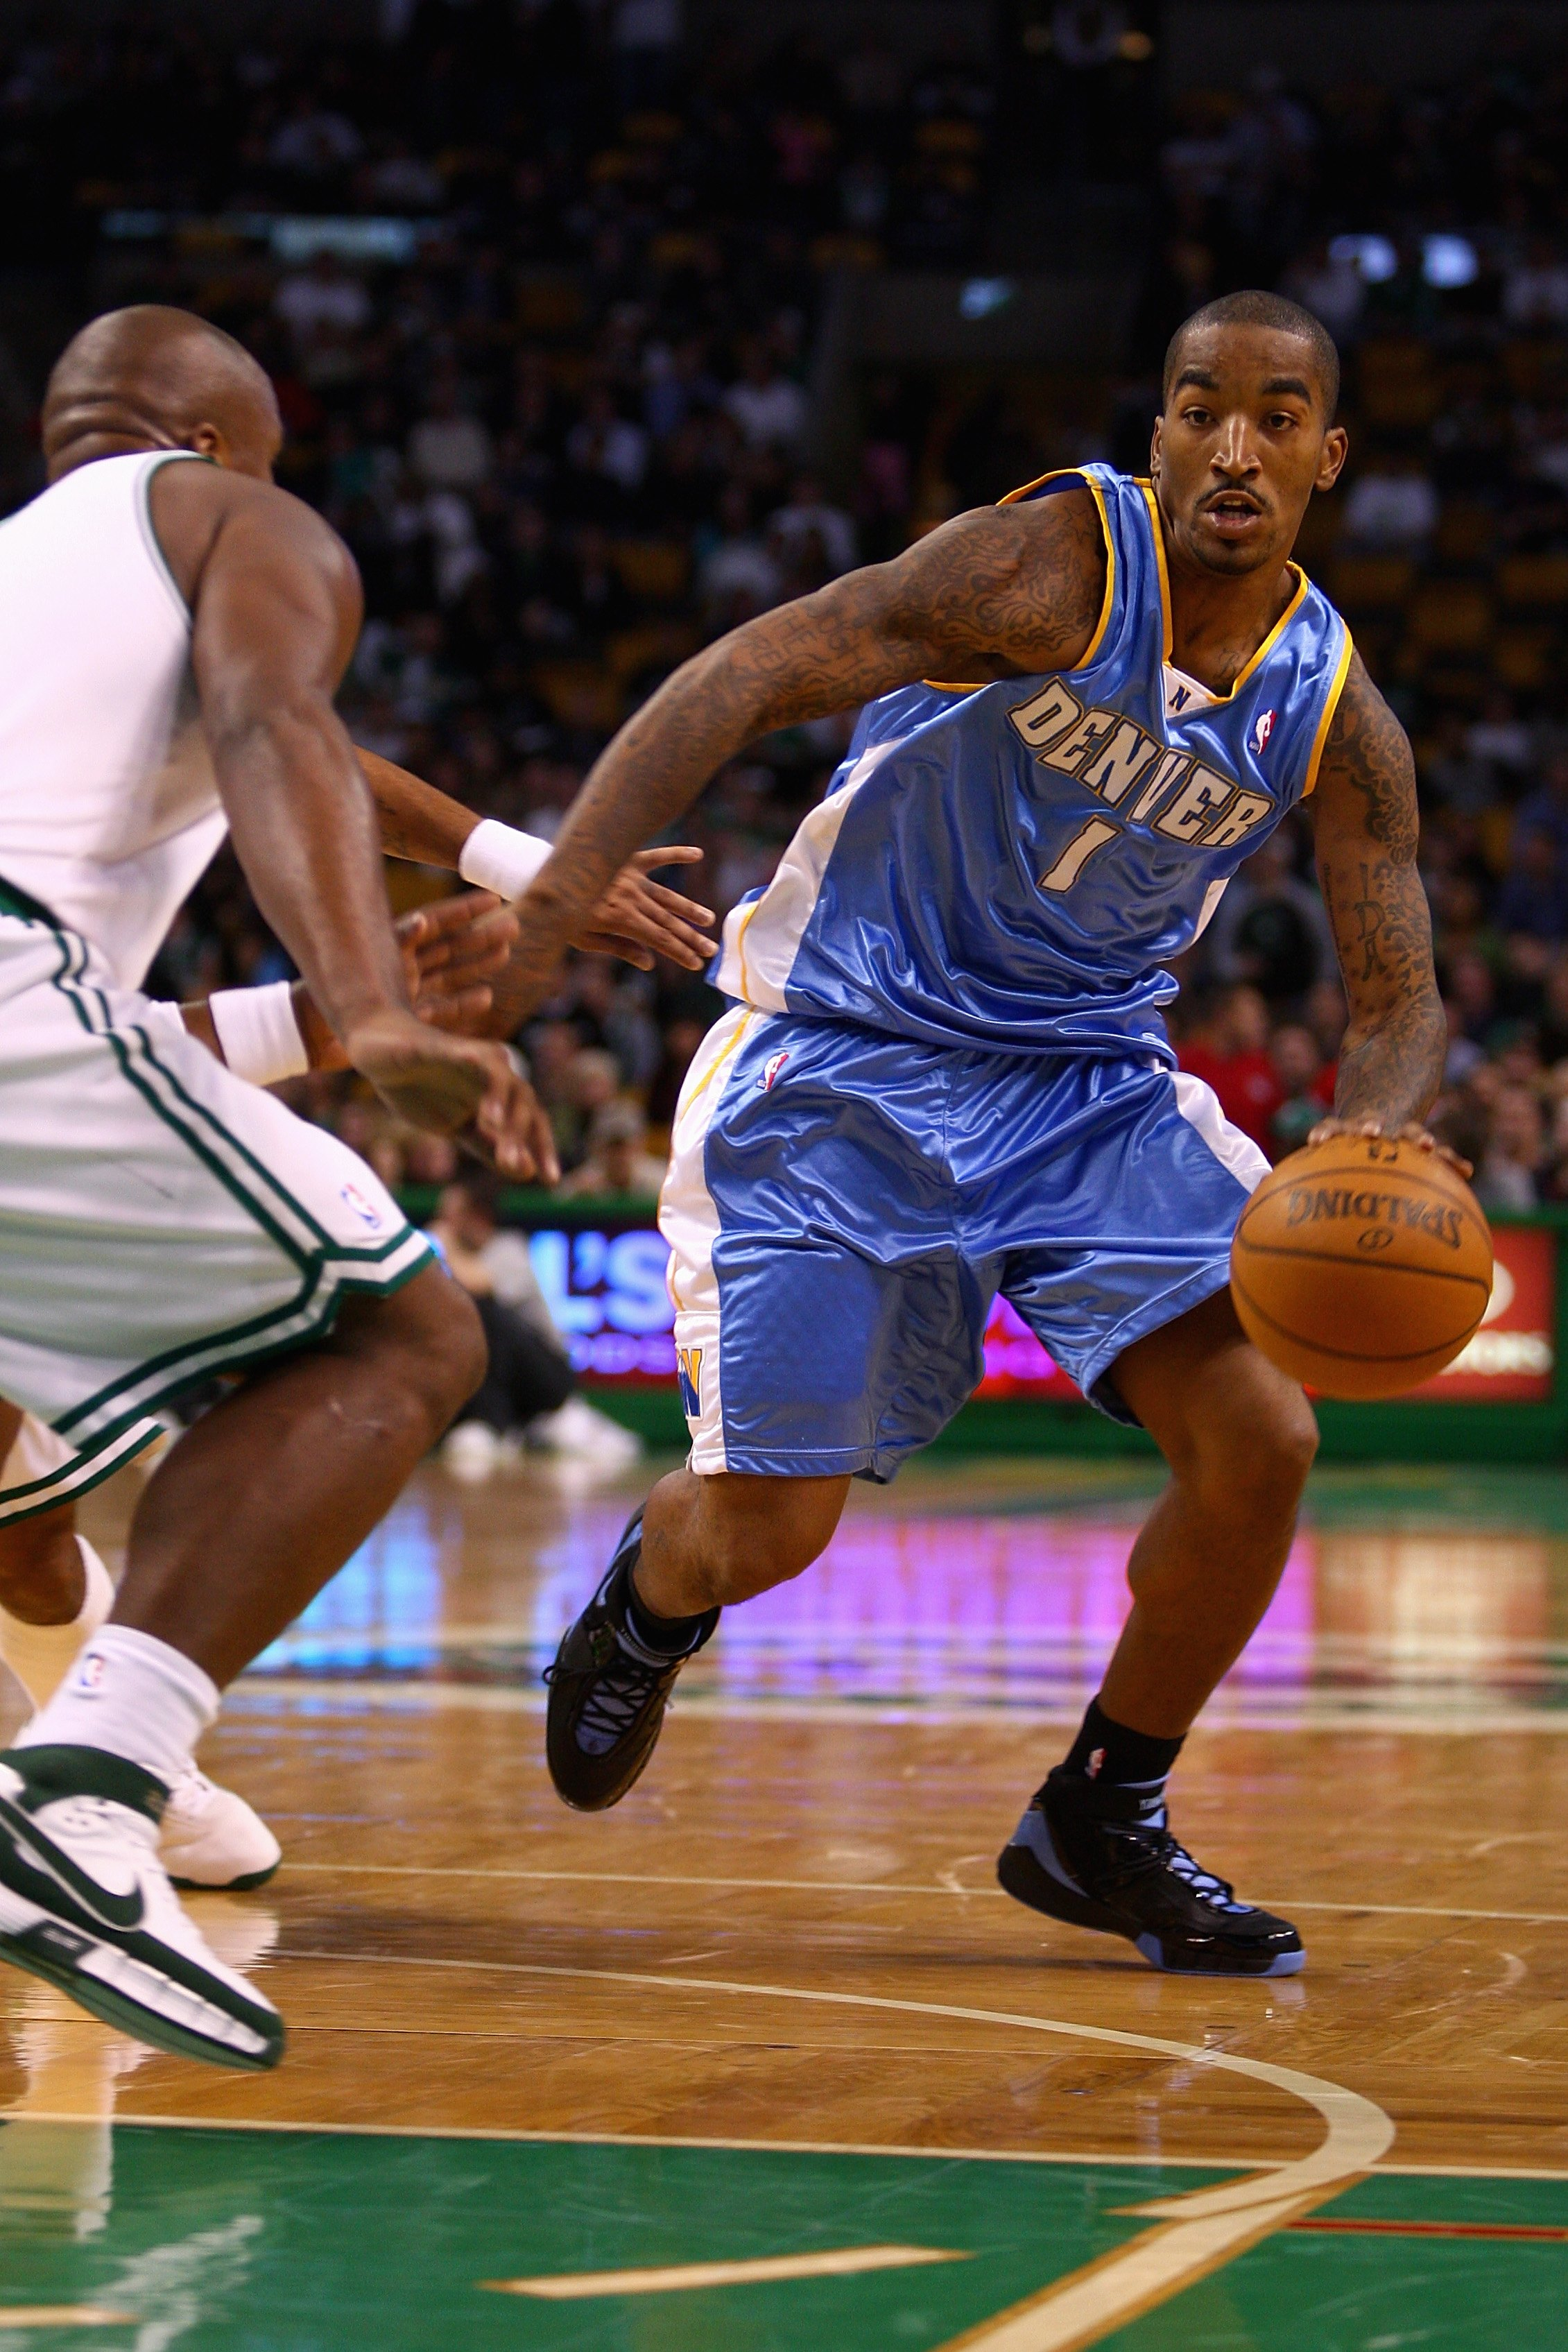 BOSTON - NOVEMBER 7: J.R. Smith #1 of the Denver Nuggets goes up against Glen Davis #11 of the Boston Celtics during the game on November 7, 2007 at the TD Banknorth Garden in Boston, Massachusetts.  The Celtics won 119-93.  NOTE TO USER: User expressly a